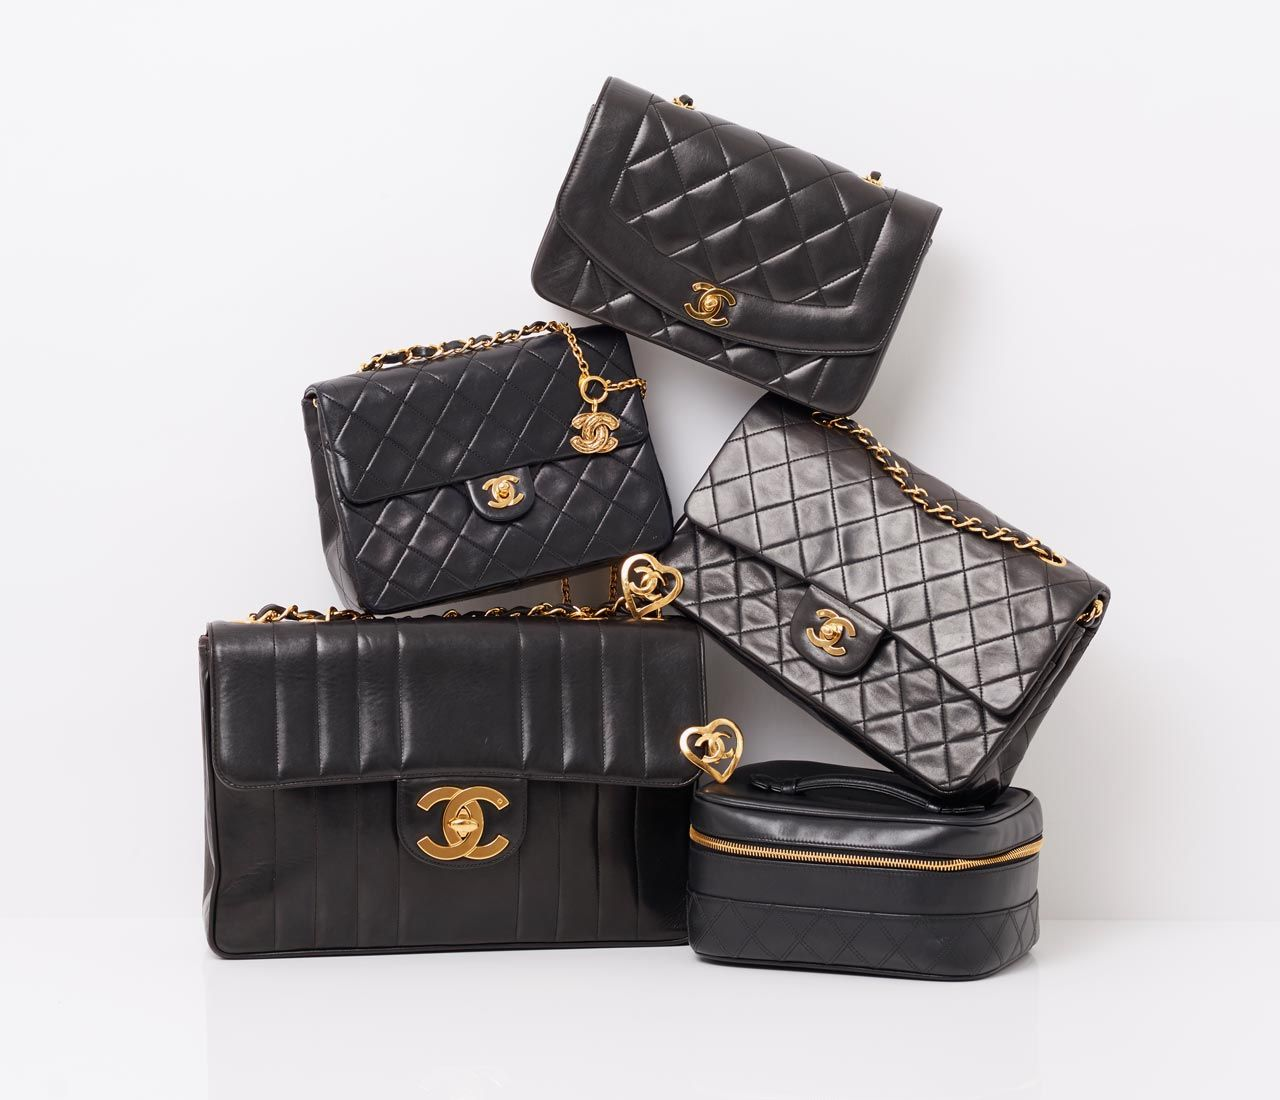 ddc037dd93f324 Vintage Heirloom - Finest Chanel bags & designer accessories | Coco ...